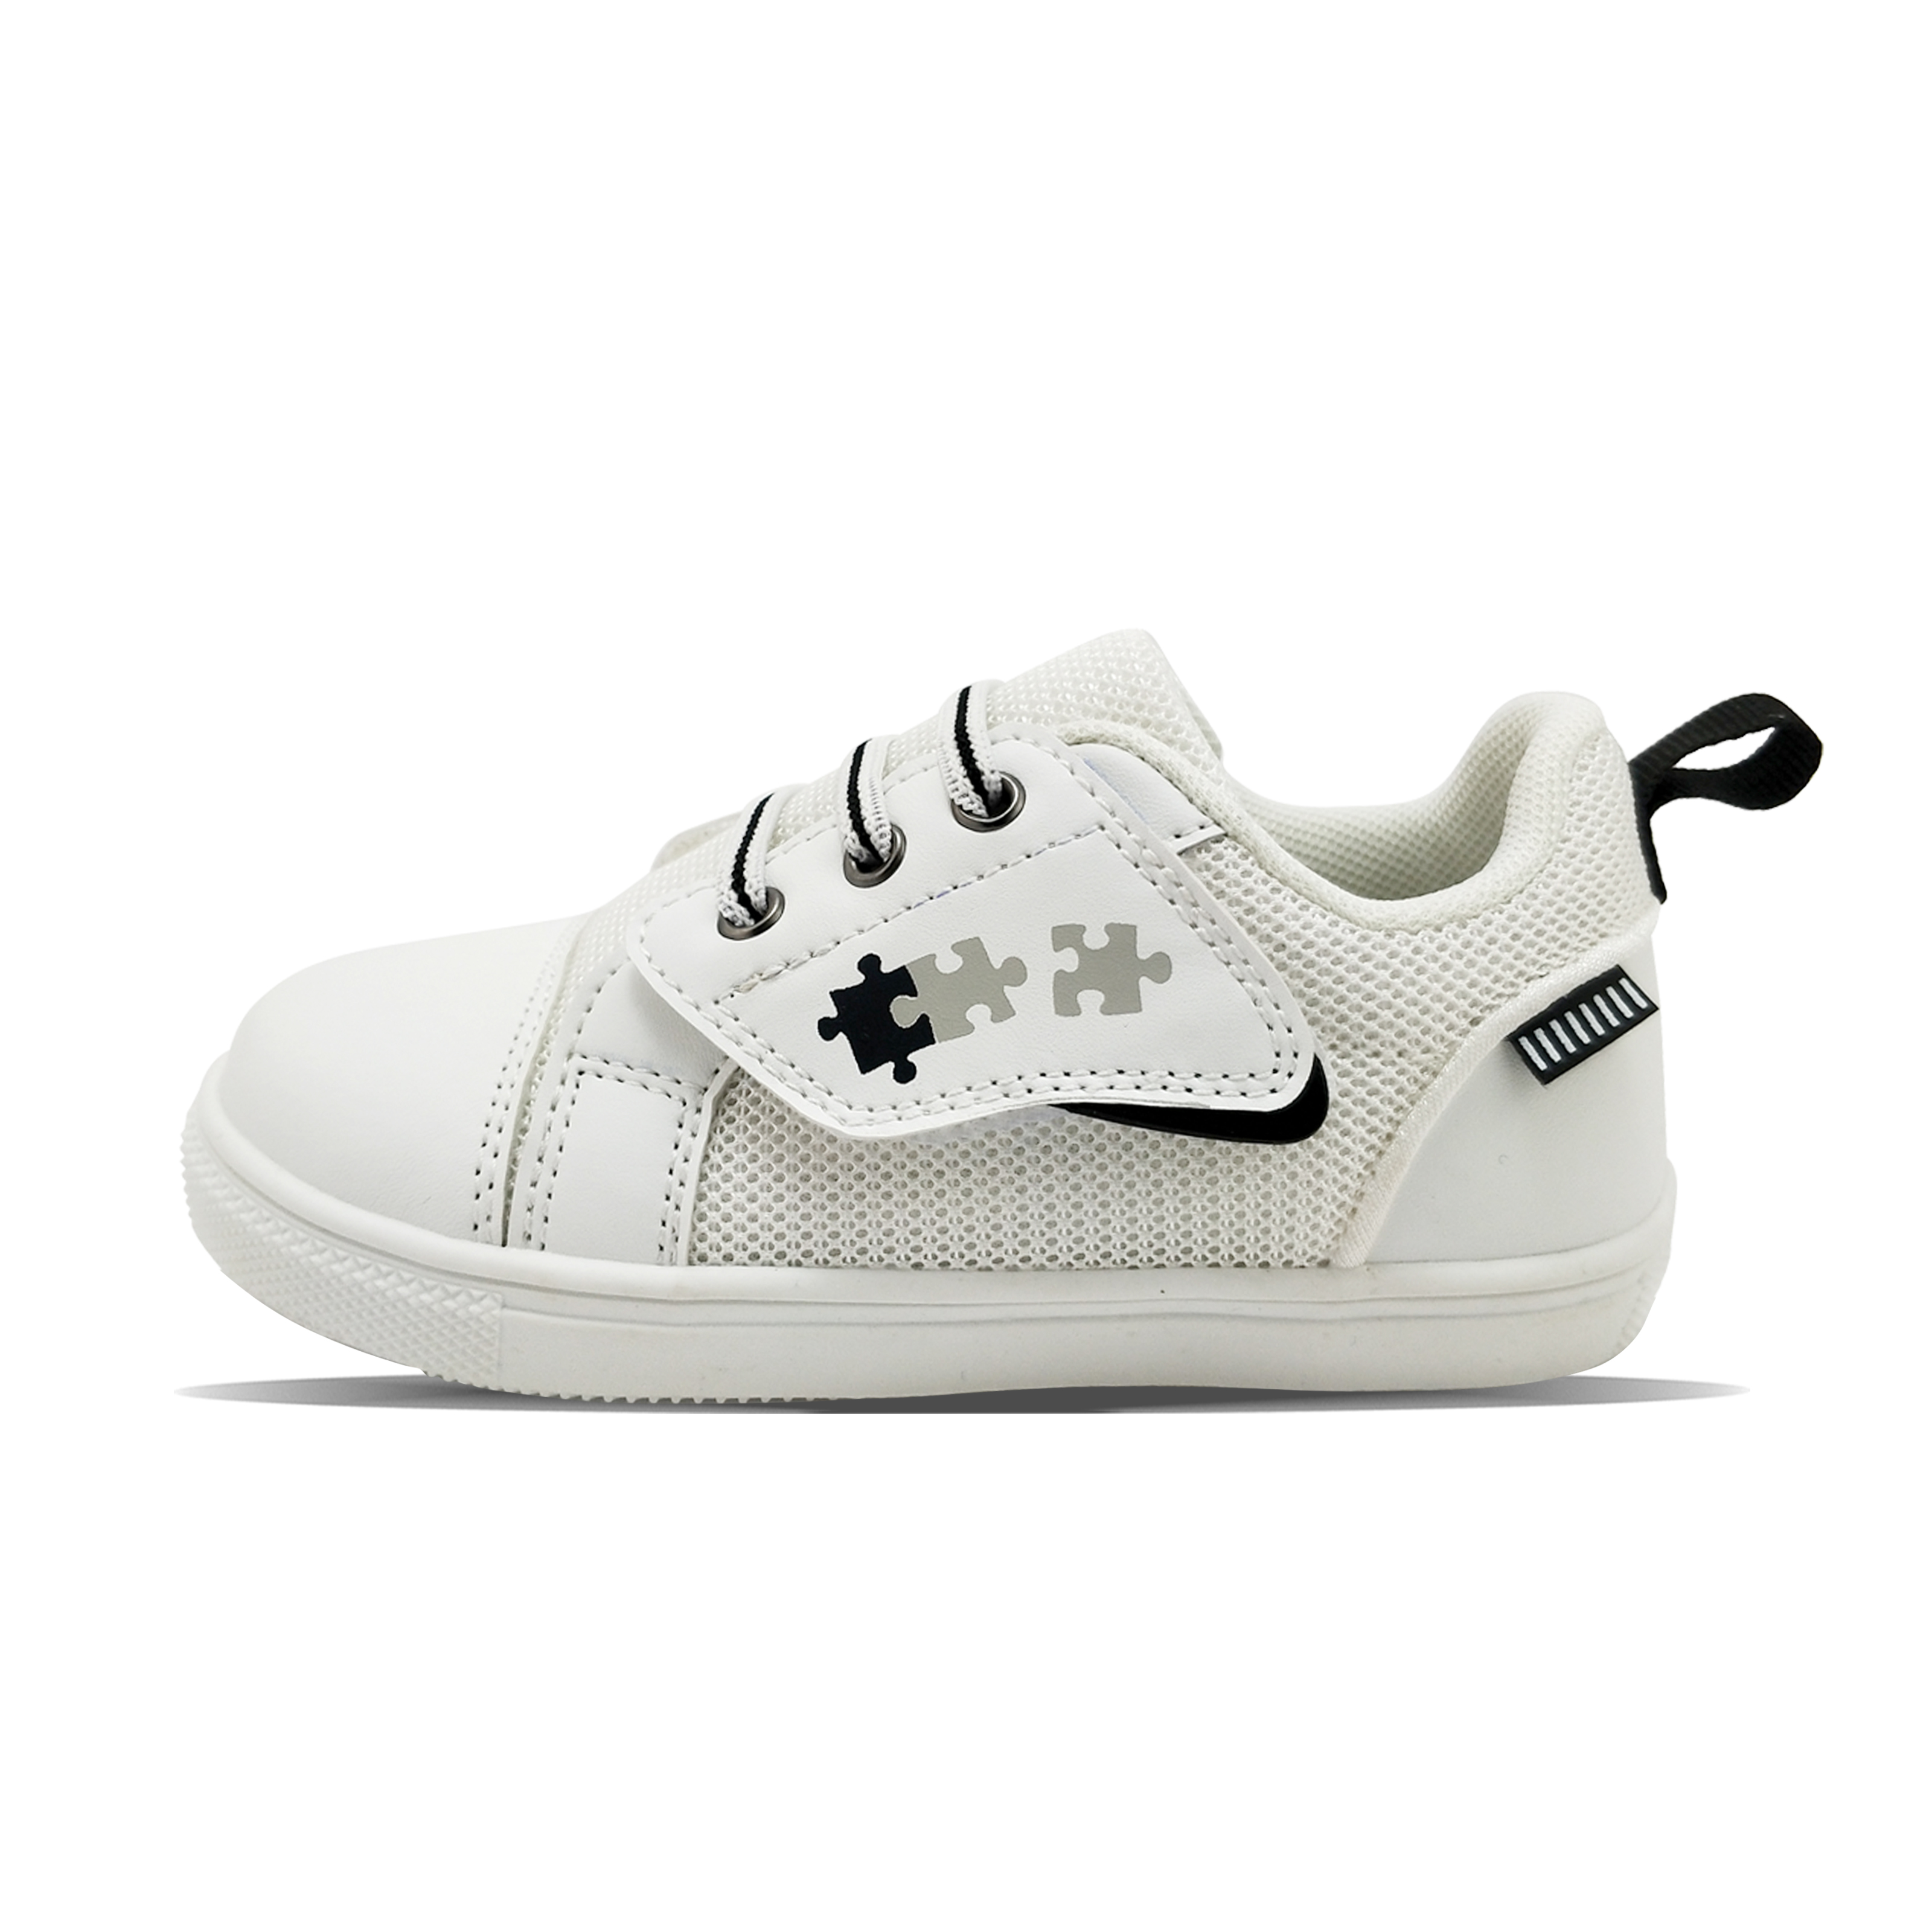 Jigsaw magic tape summer breathable white simple boy's sports shoes